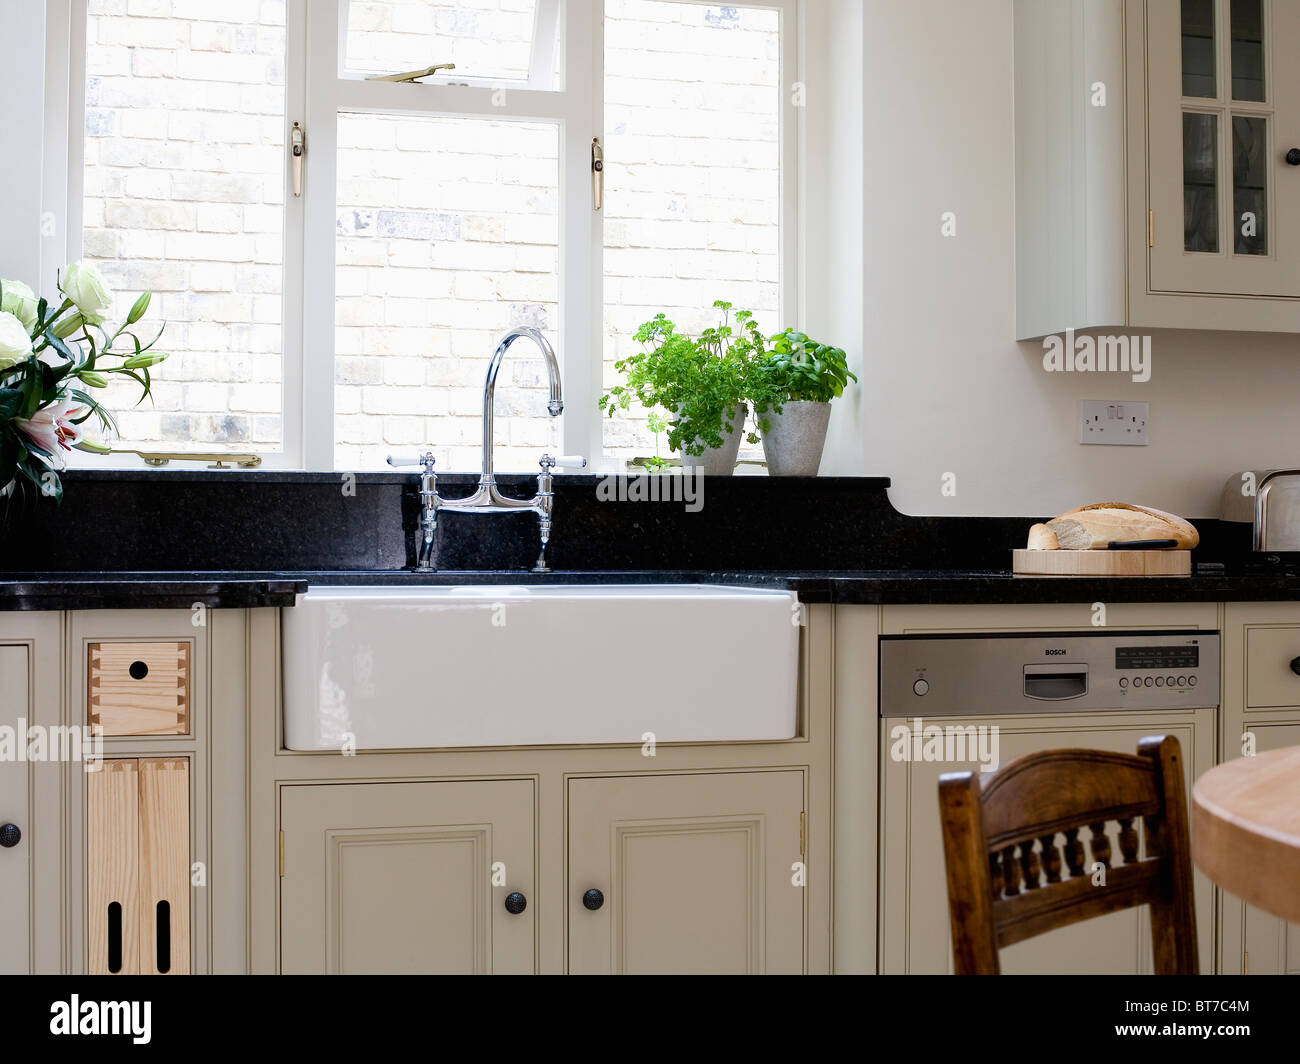 Belfast Sink Below Window In Traditional Kitchen With Pale Beige Stock Photo Royalty Free Image